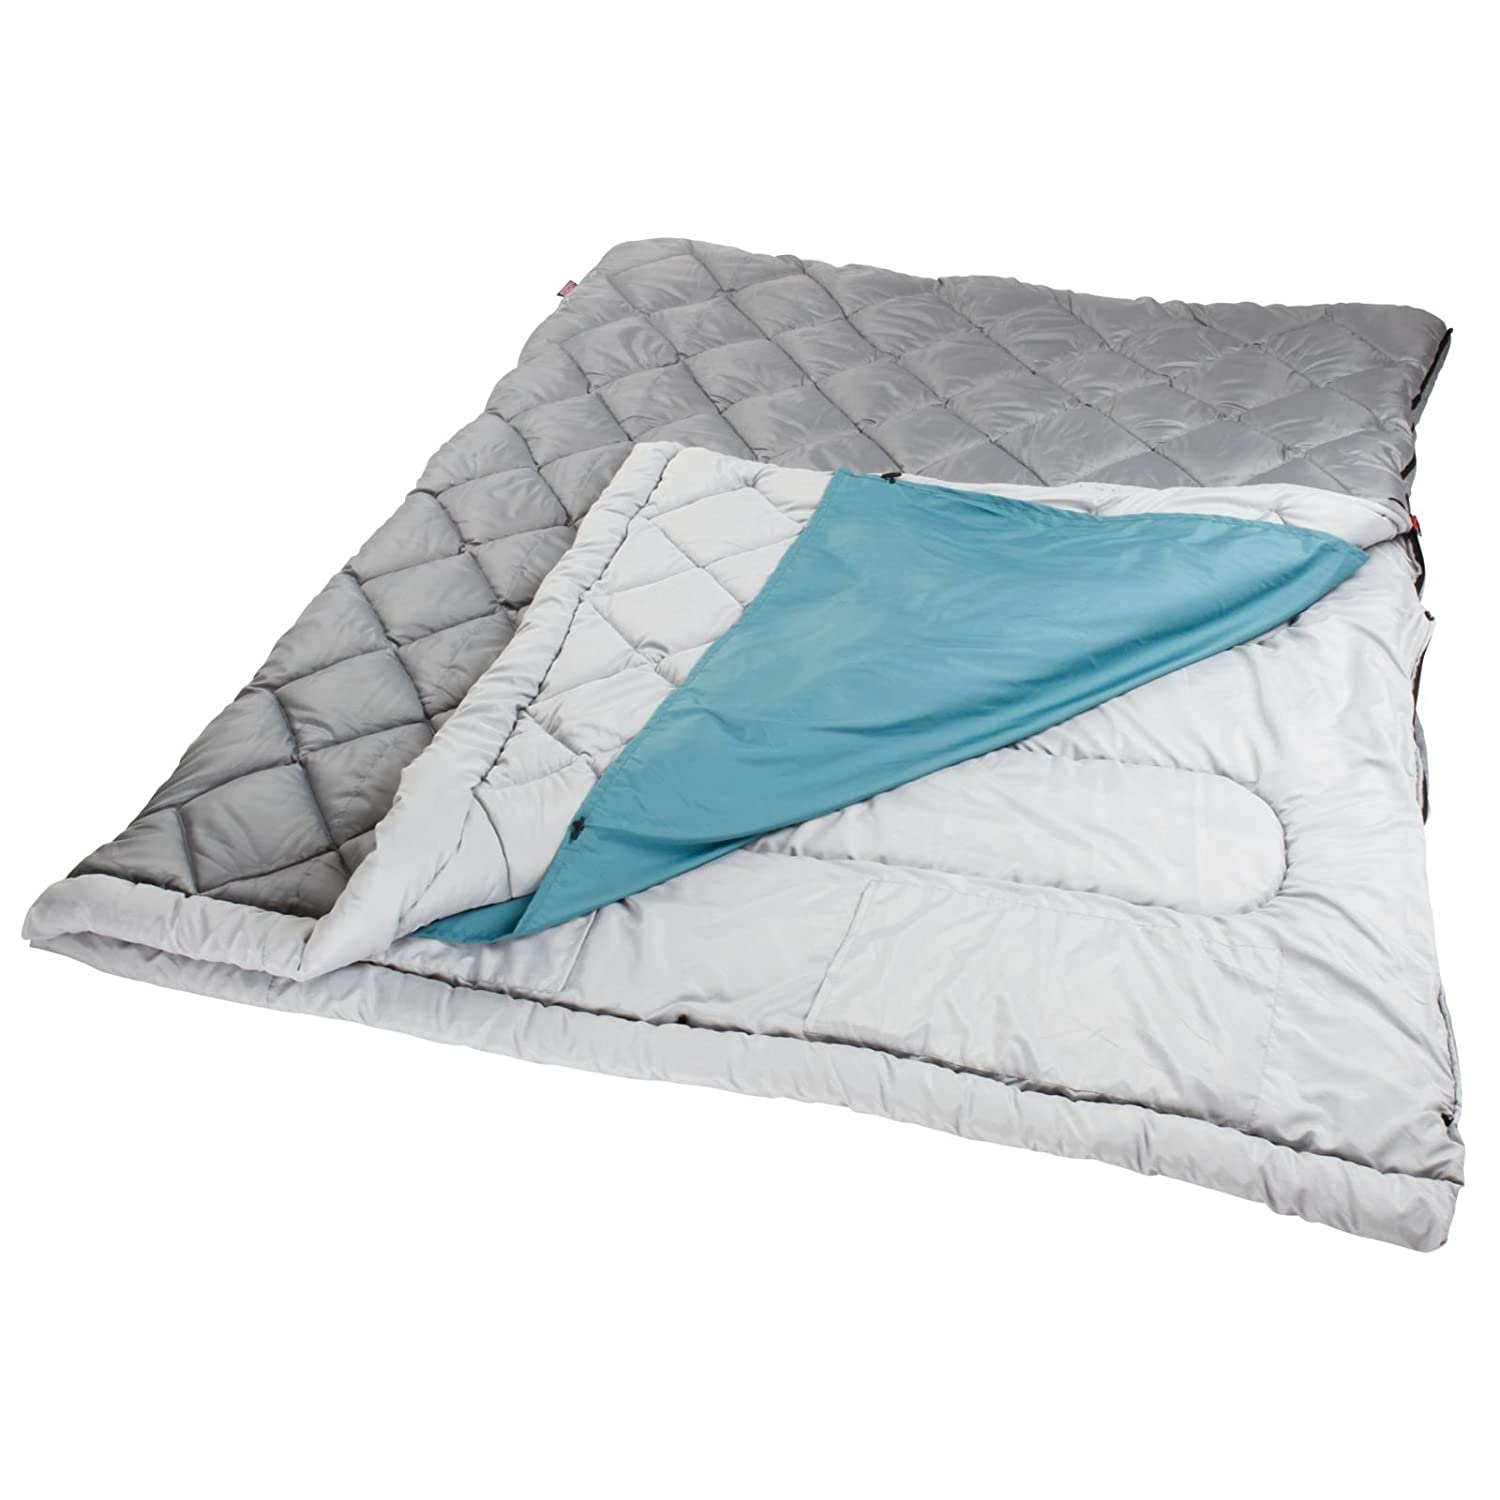 Coleman Tandem 3-in-1 45 Big and Tall Double Adult Sleeping Bag